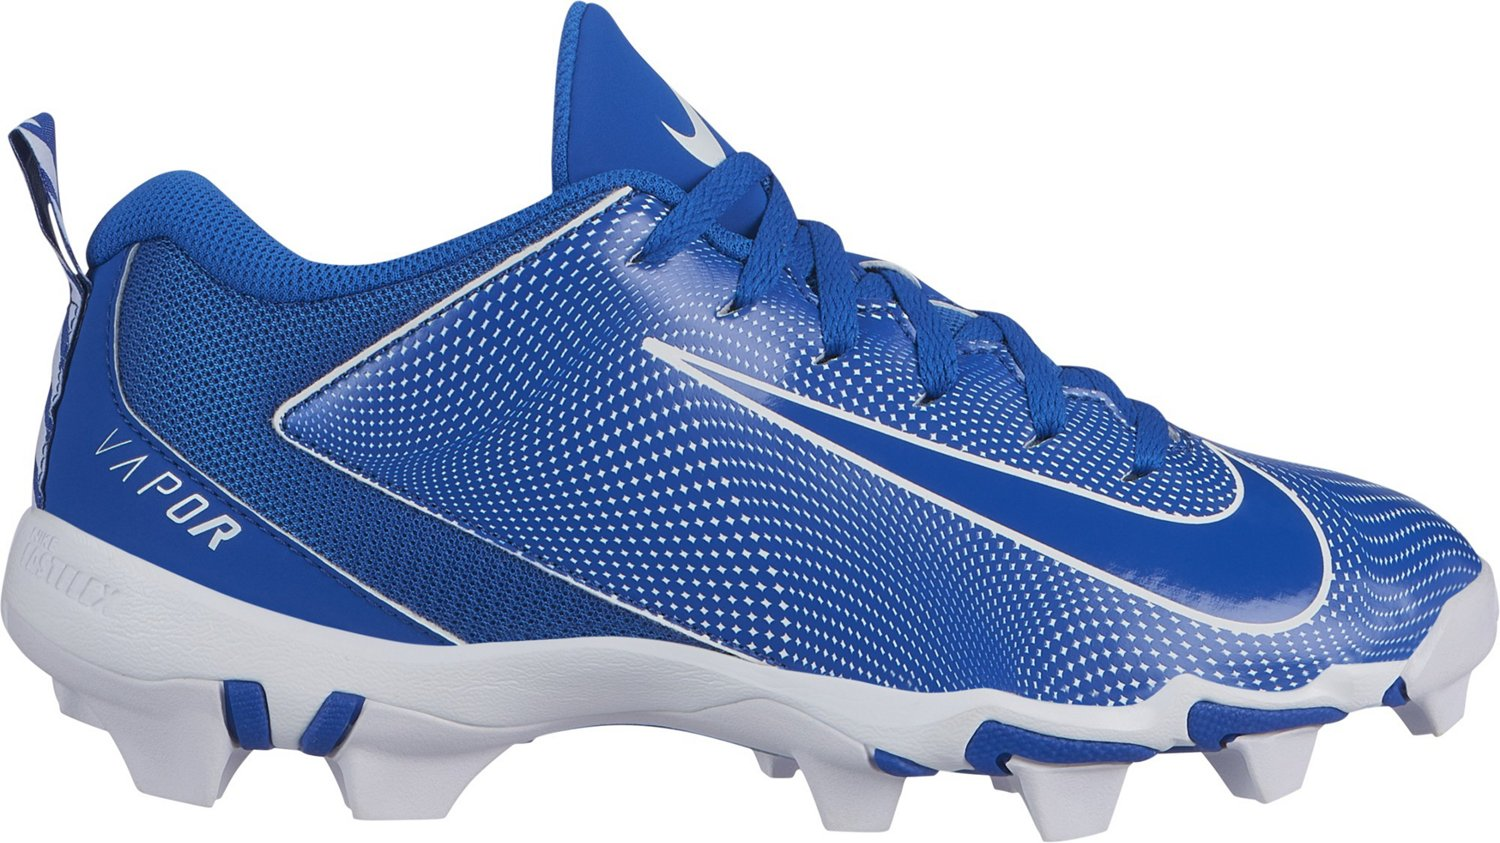 f8dbd14b0 Display product reviews for Nike Boys' Vapor Untouchable Shark 3 Football  Cleats